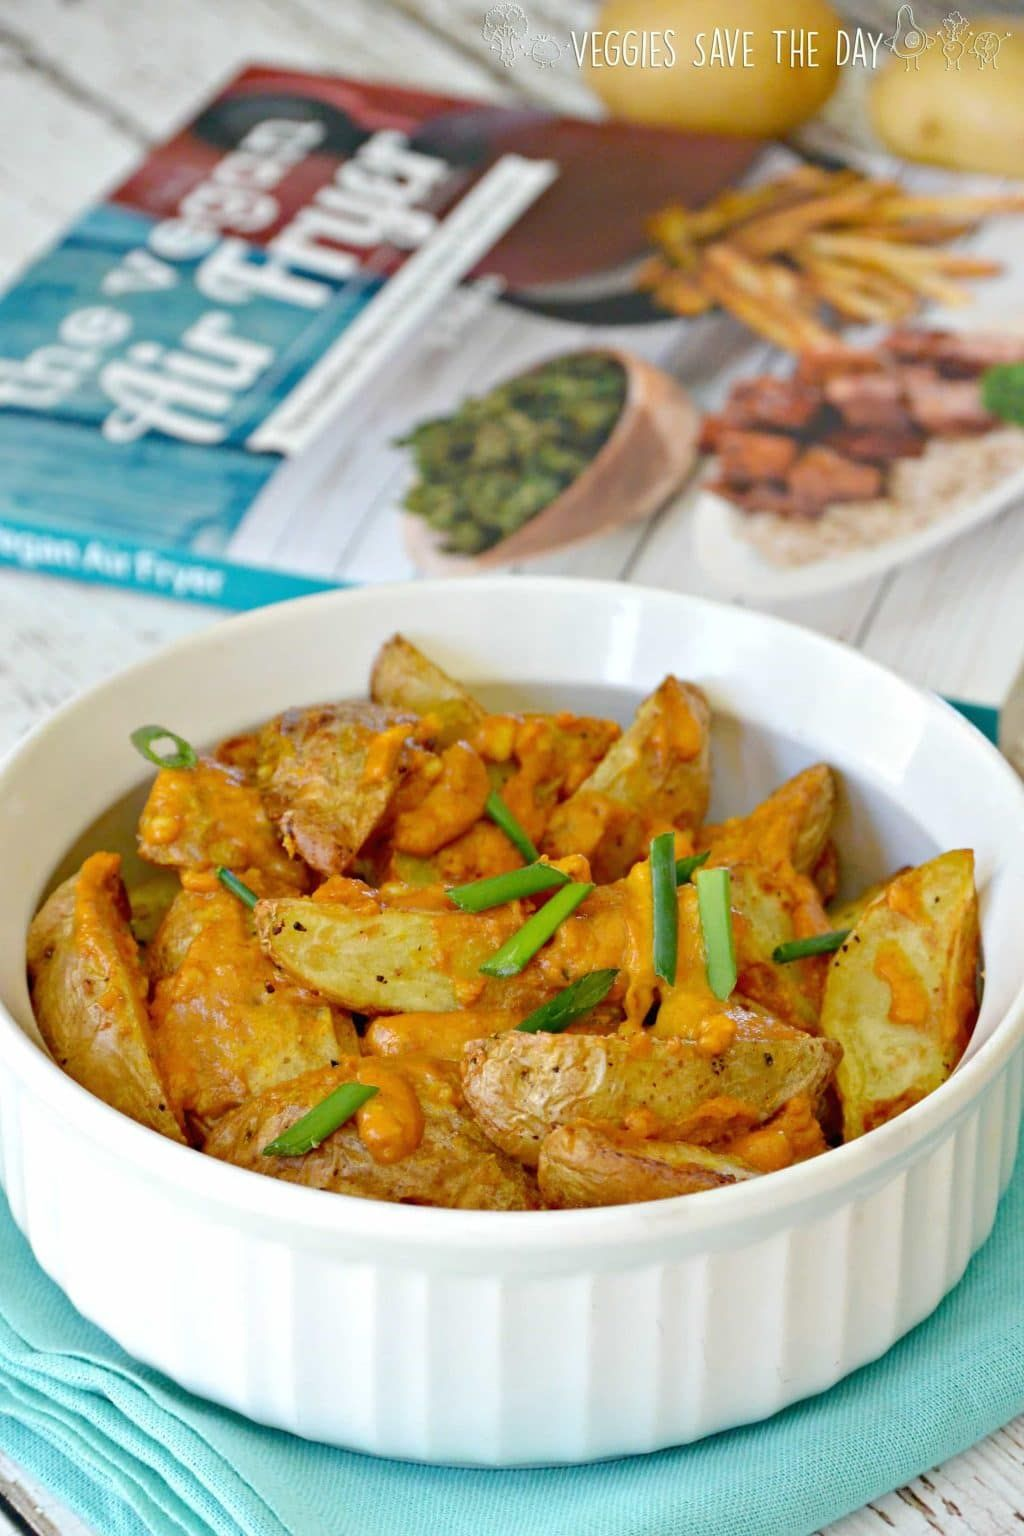 Cheesy Potato Wedges from The Vegan Air Fryer by JL Fields